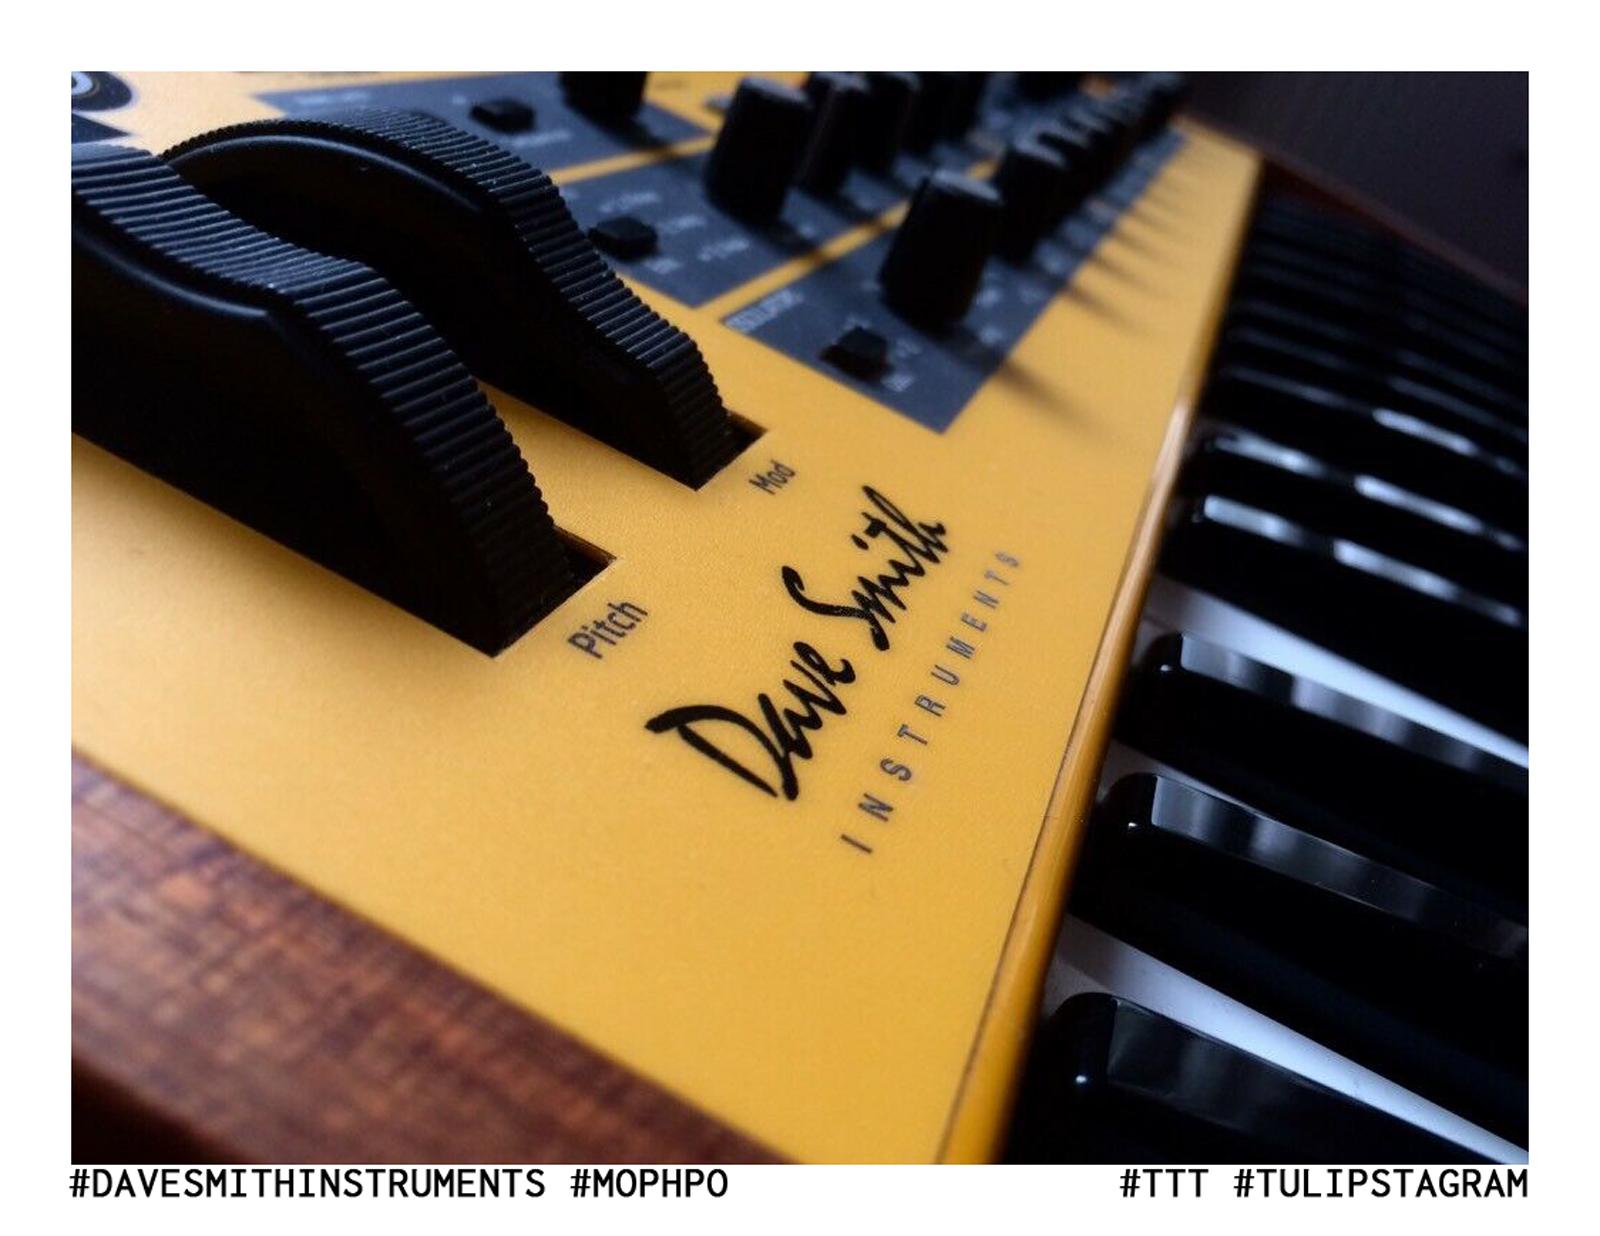 #davesmithinstruments #mopho (Quelle: Hersteller) #vergriffen #TTT #Tulipstagram